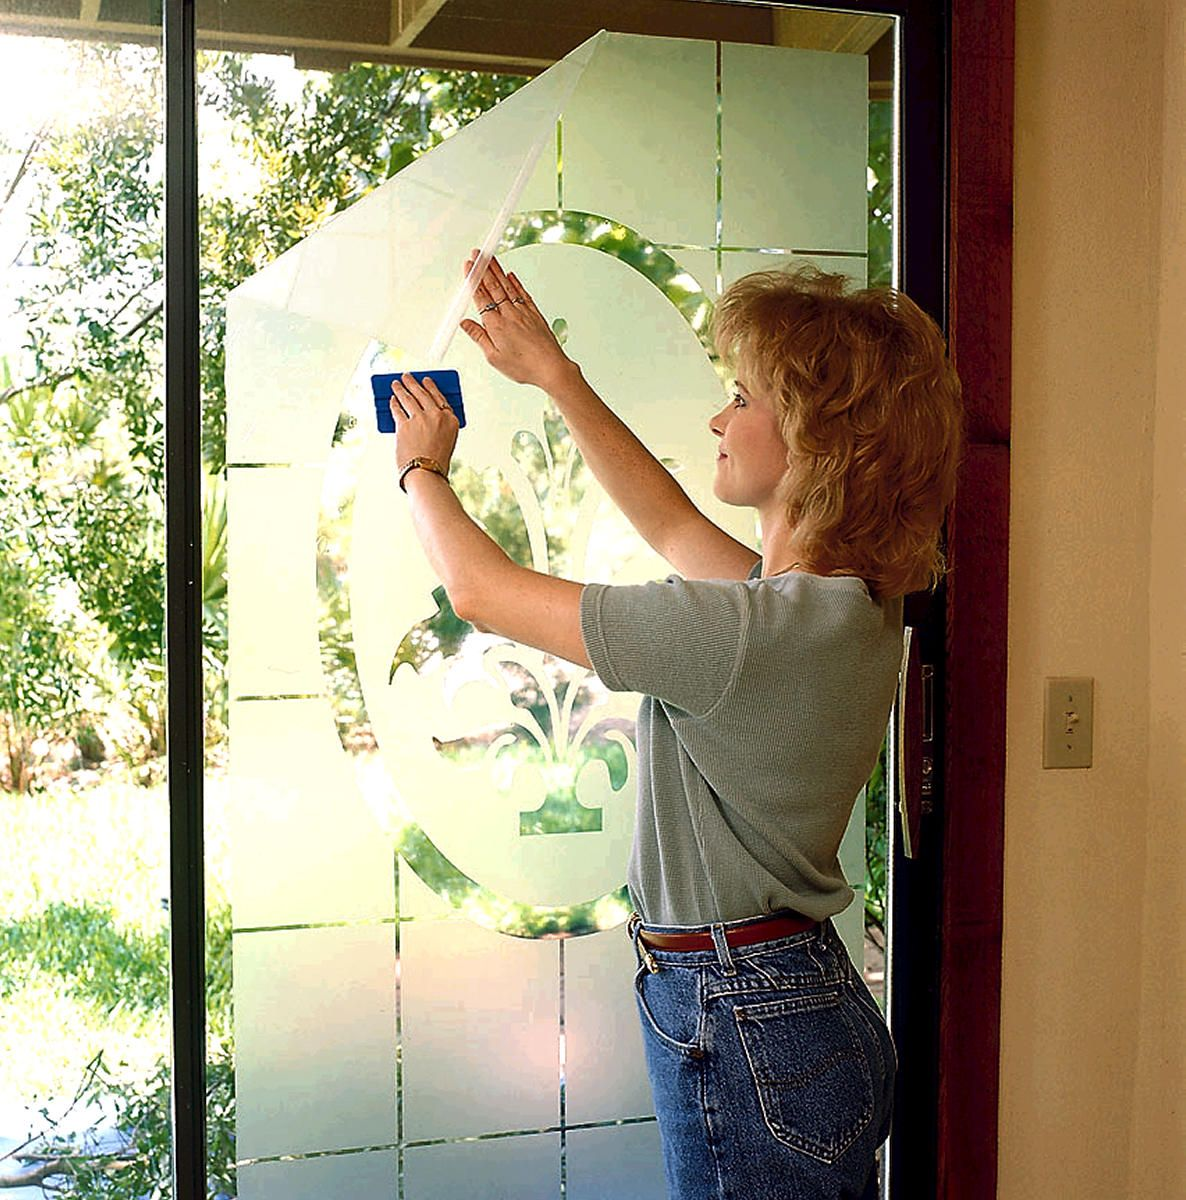 """Outwater's Glass Film enables anyone to easily create or """"overlay"""" an entirely new permanent or temporary appearance for any existing glass installation as well as for many other smooth, shiny non-porous surfaces such as on panels, partitions, display cases, signage, mirrors, windows, doors, displays and exhibits."""